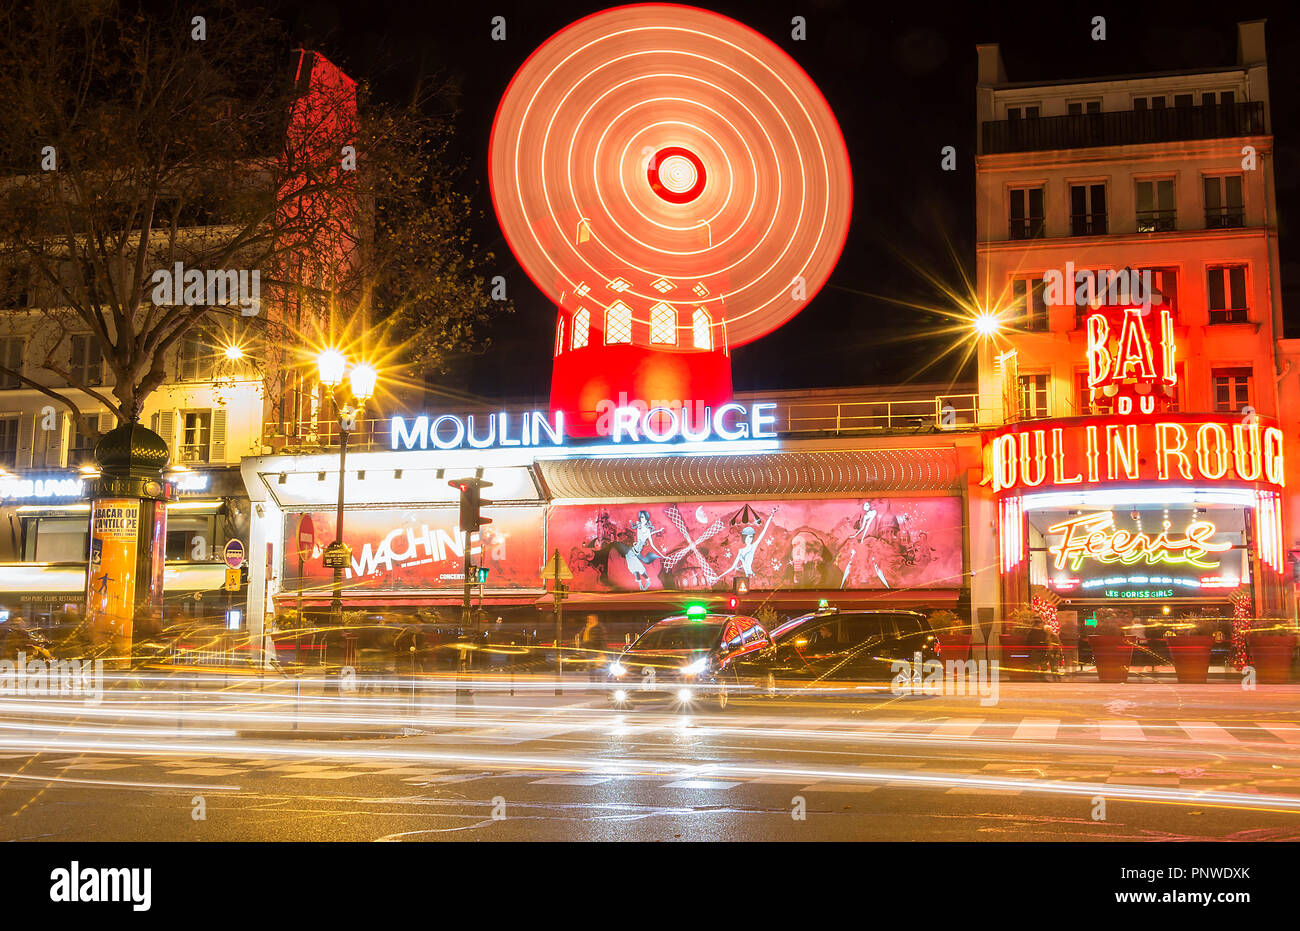 The Moulin Rouge , Paris, France. It is a famous cabaret built in 1889, locating in the Paris red-light district of Pigalle - Stock Image